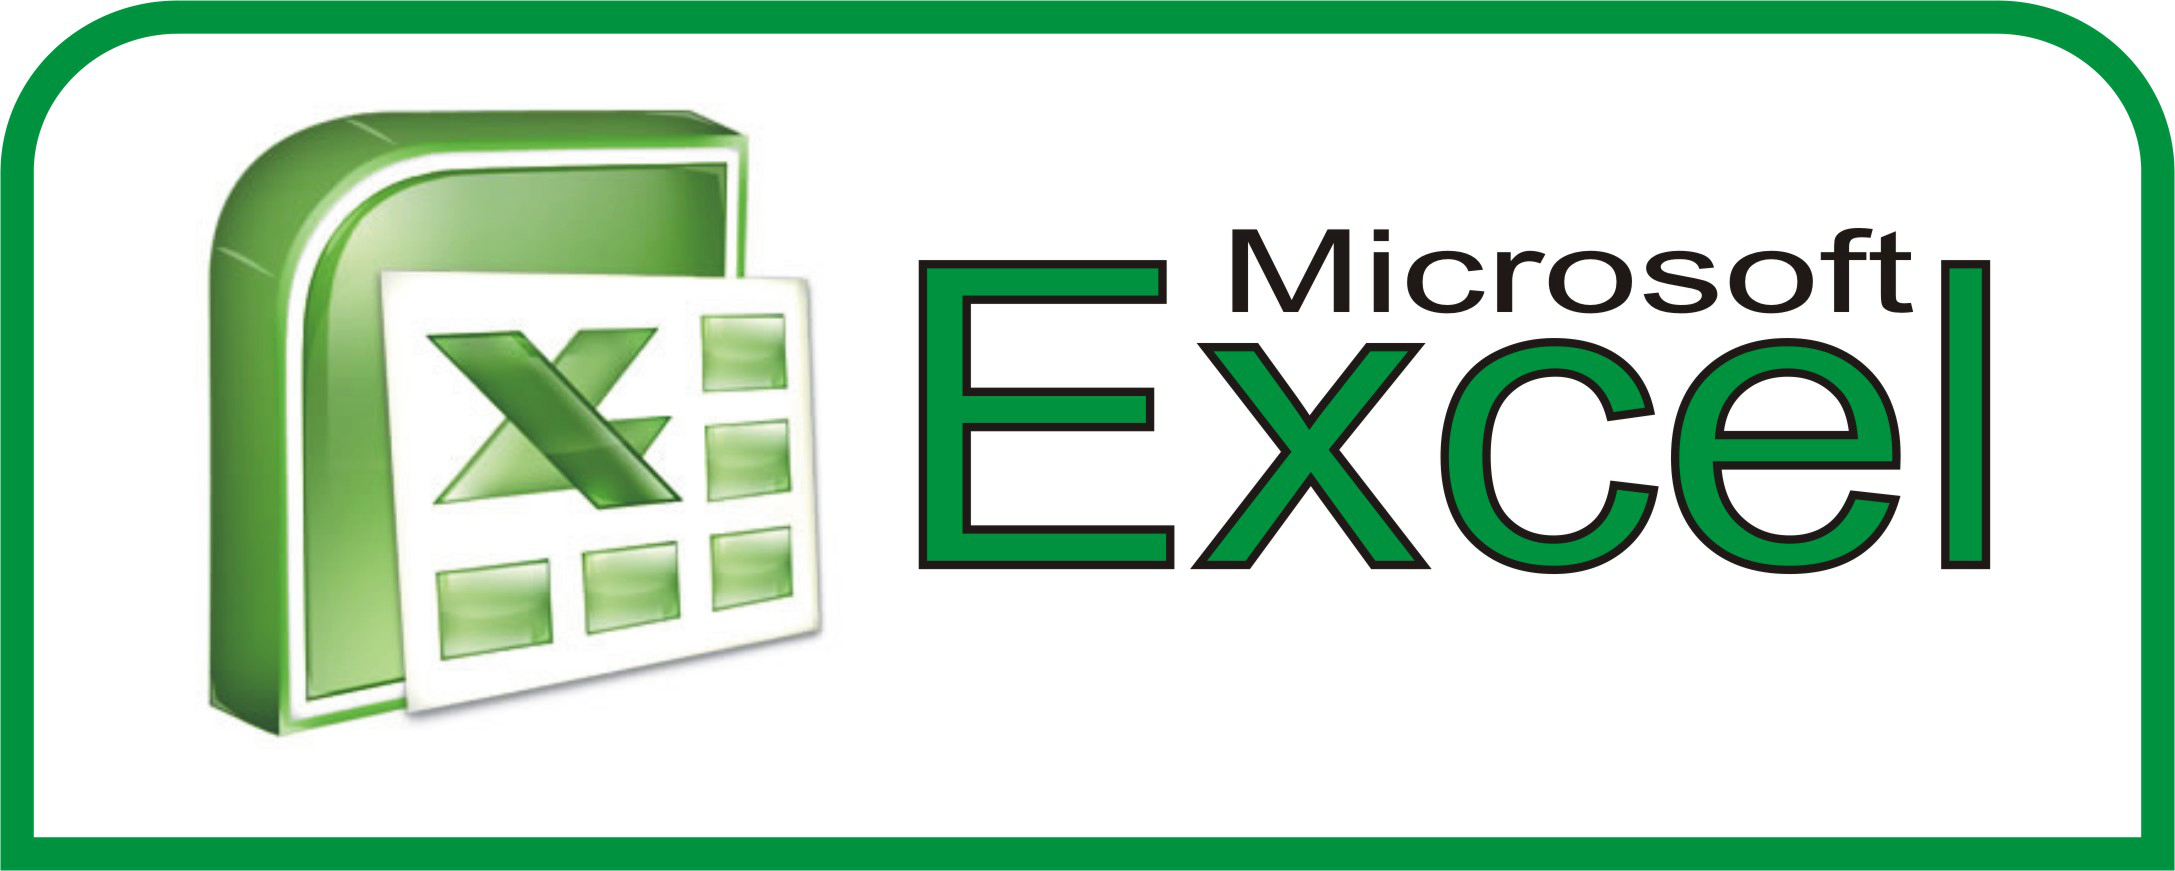 Ediblewildsus  Nice  Excel Shortcuts You Probably Didnt Know About  Techdissected With Excellent Rtrim Excel Besides Trim Cells In Excel Furthermore Standard Curve In Excel With Delectable How To Recover Excel Password Also Spreadsheet Definition Excel In Addition Plot Standard Deviation In Excel And  Excel Training As Well As Create Lookup Table Excel Additionally Excel Gantt Chart  From Techdissectedcom With Ediblewildsus  Excellent  Excel Shortcuts You Probably Didnt Know About  Techdissected With Delectable Rtrim Excel Besides Trim Cells In Excel Furthermore Standard Curve In Excel And Nice How To Recover Excel Password Also Spreadsheet Definition Excel In Addition Plot Standard Deviation In Excel From Techdissectedcom